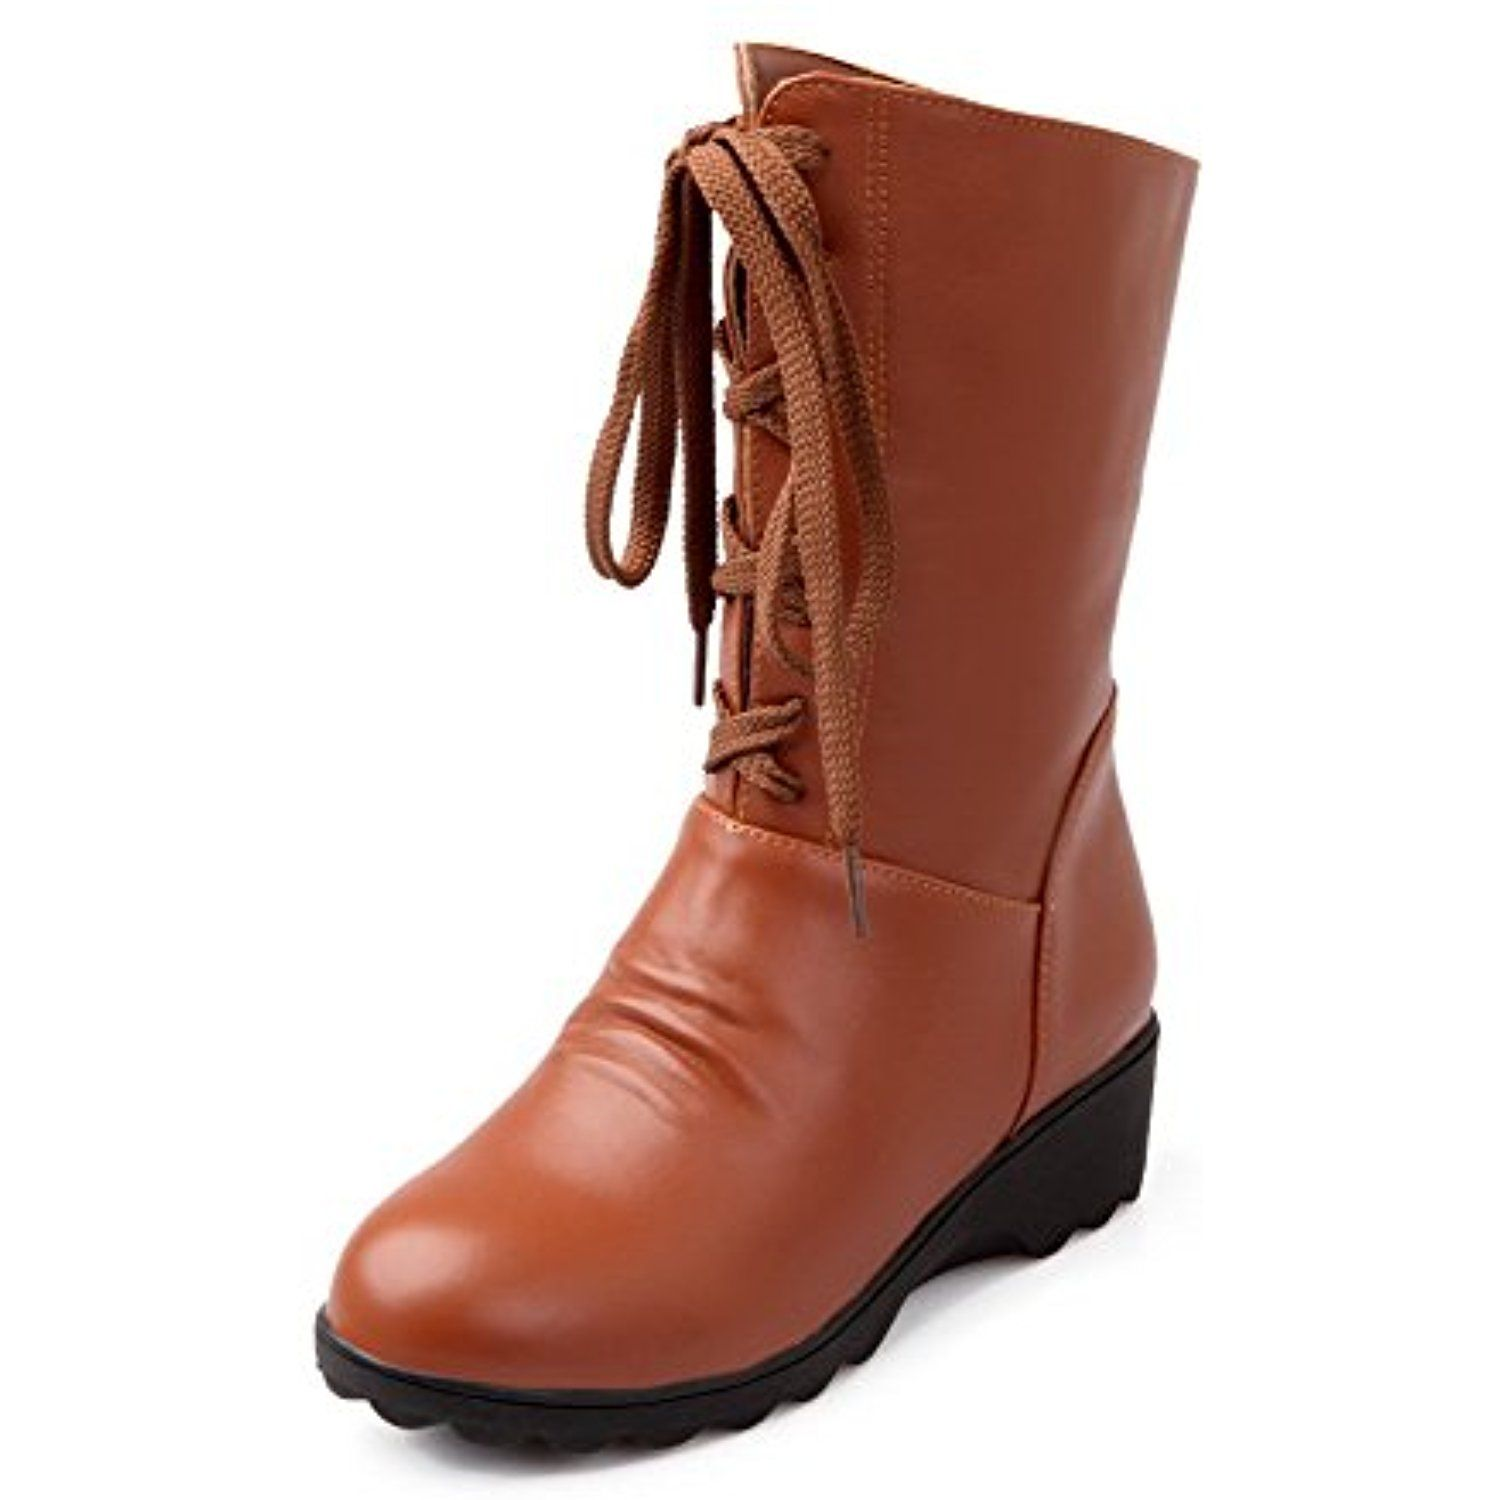 Women's High-Heels Solid Round Closed Toe Soft Material Lace Up Boots